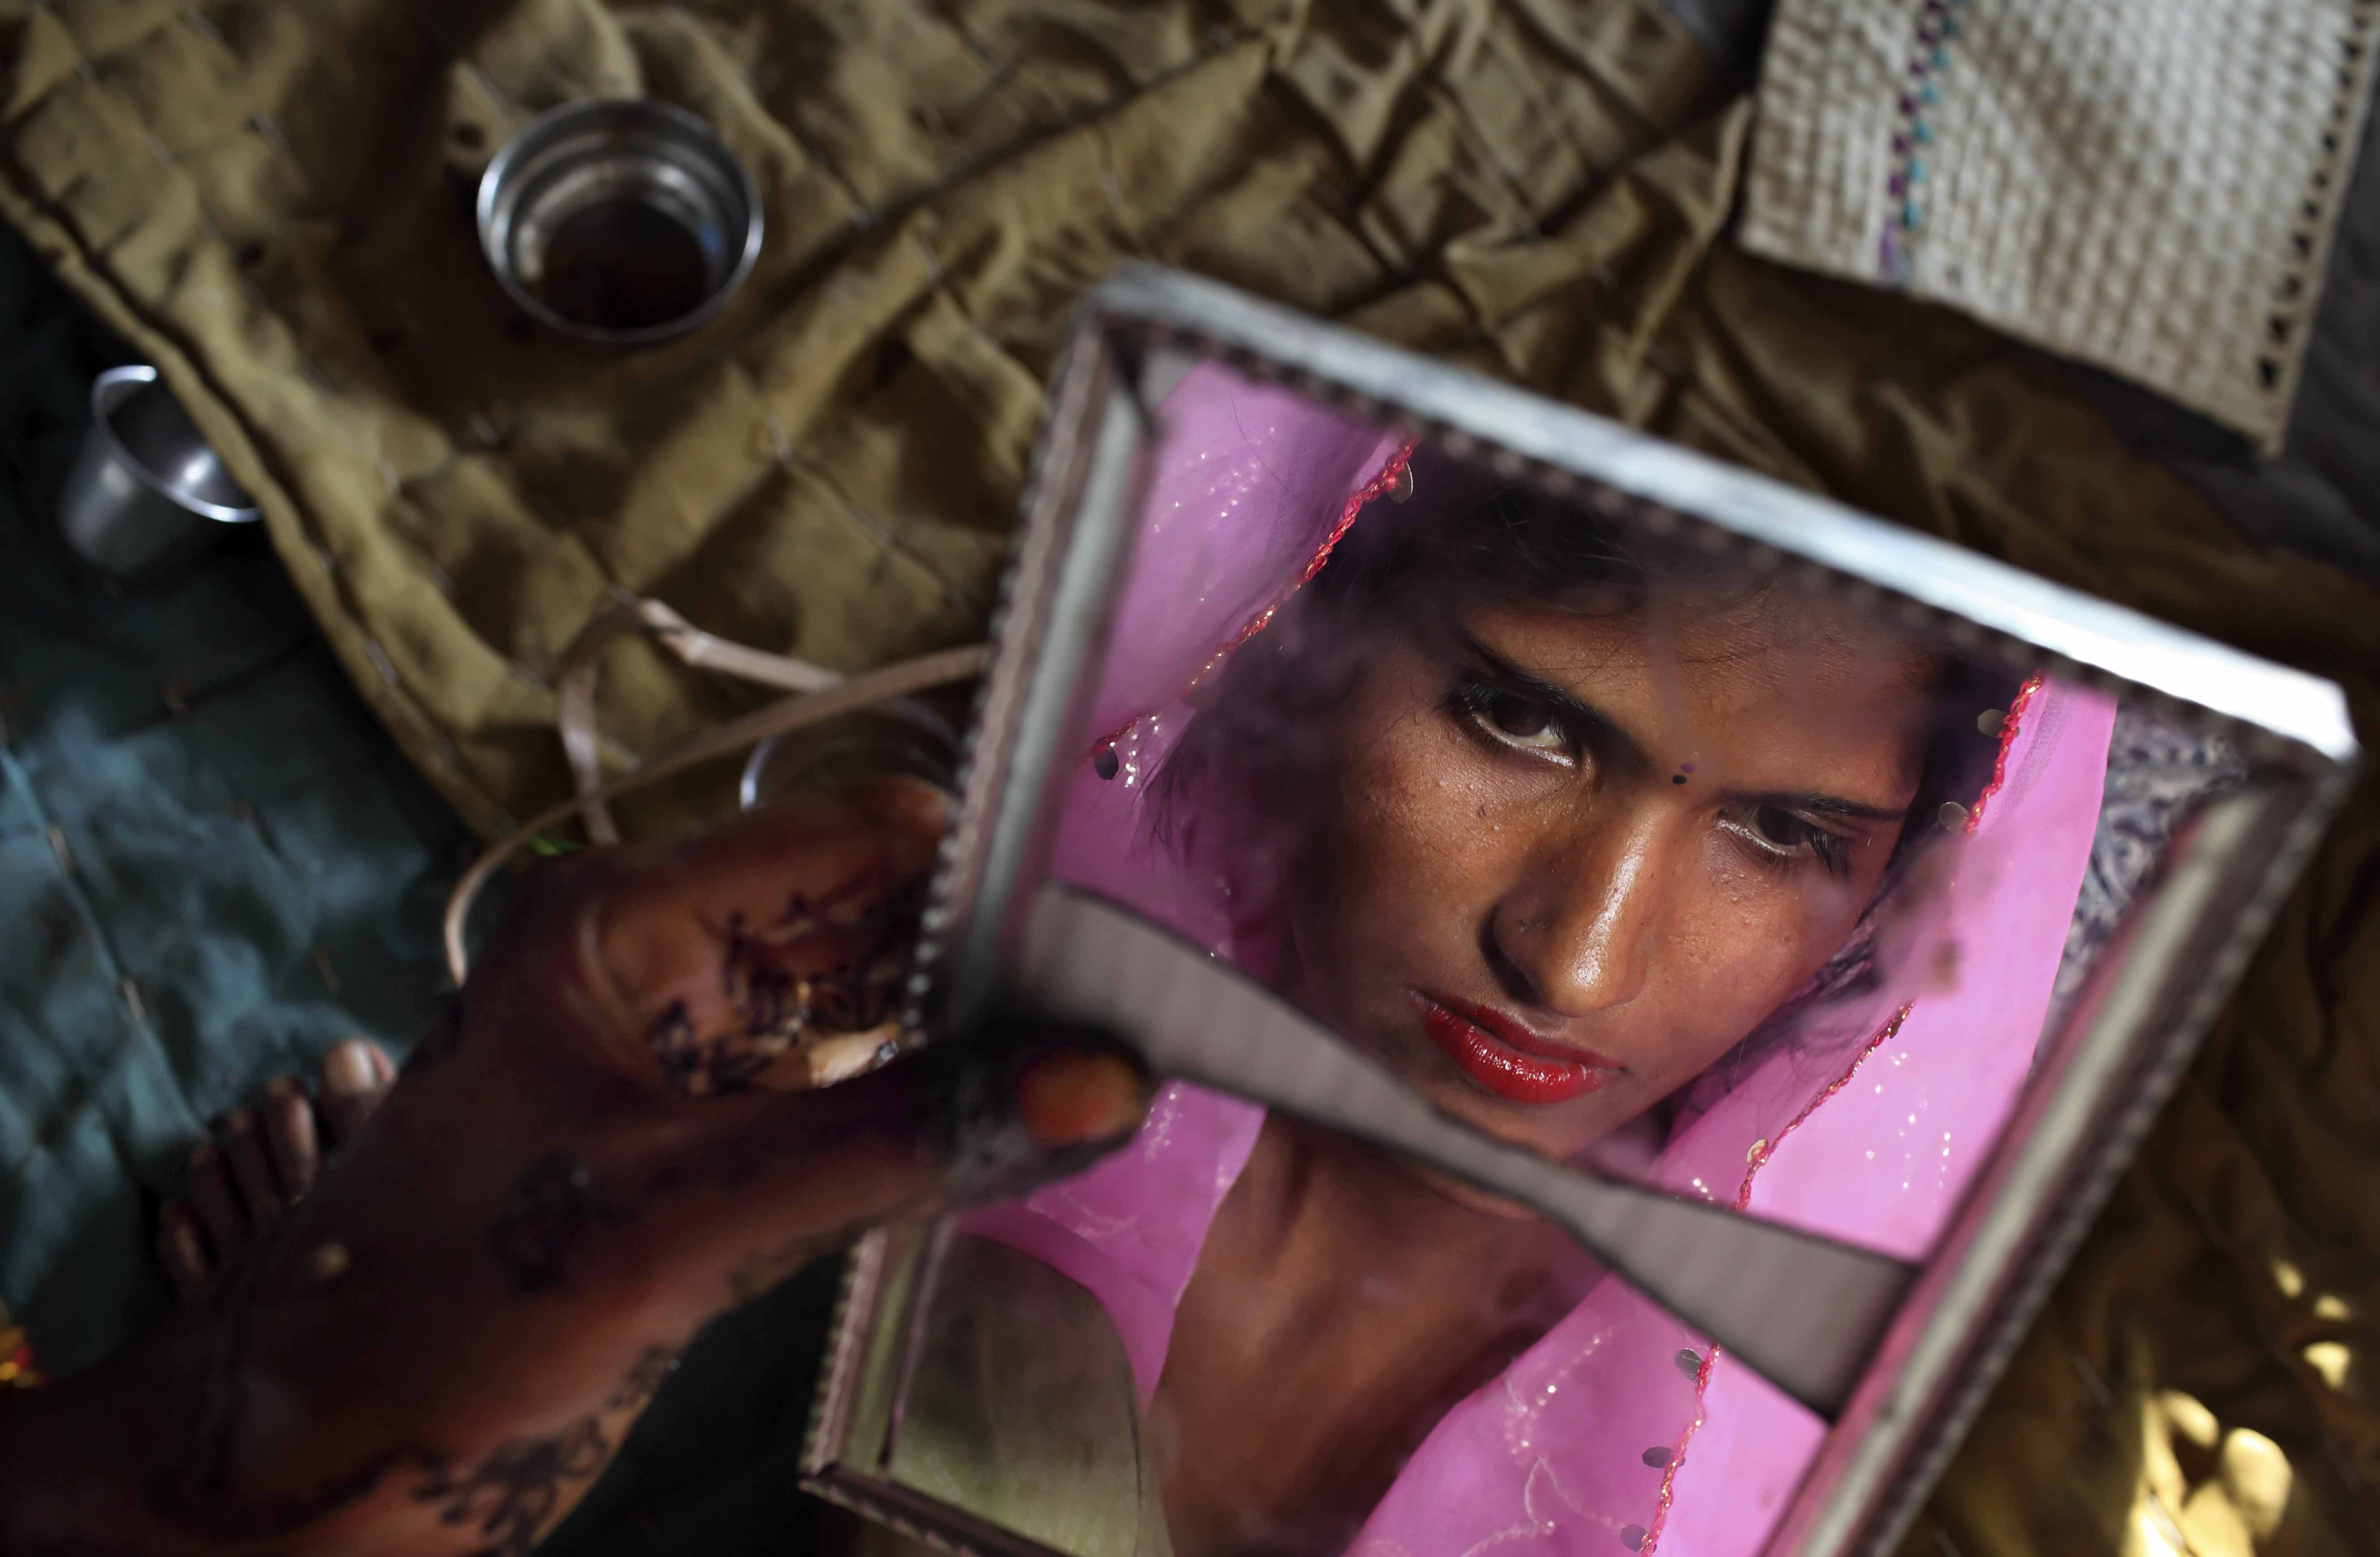 Radha, 15, observes herself in a cracked mirror the day before her wedding. Three young sisters Radha and her two younger sisters were married to three young sibling grooms on the Hindu holy day of Akshaya Tritiya in North India.